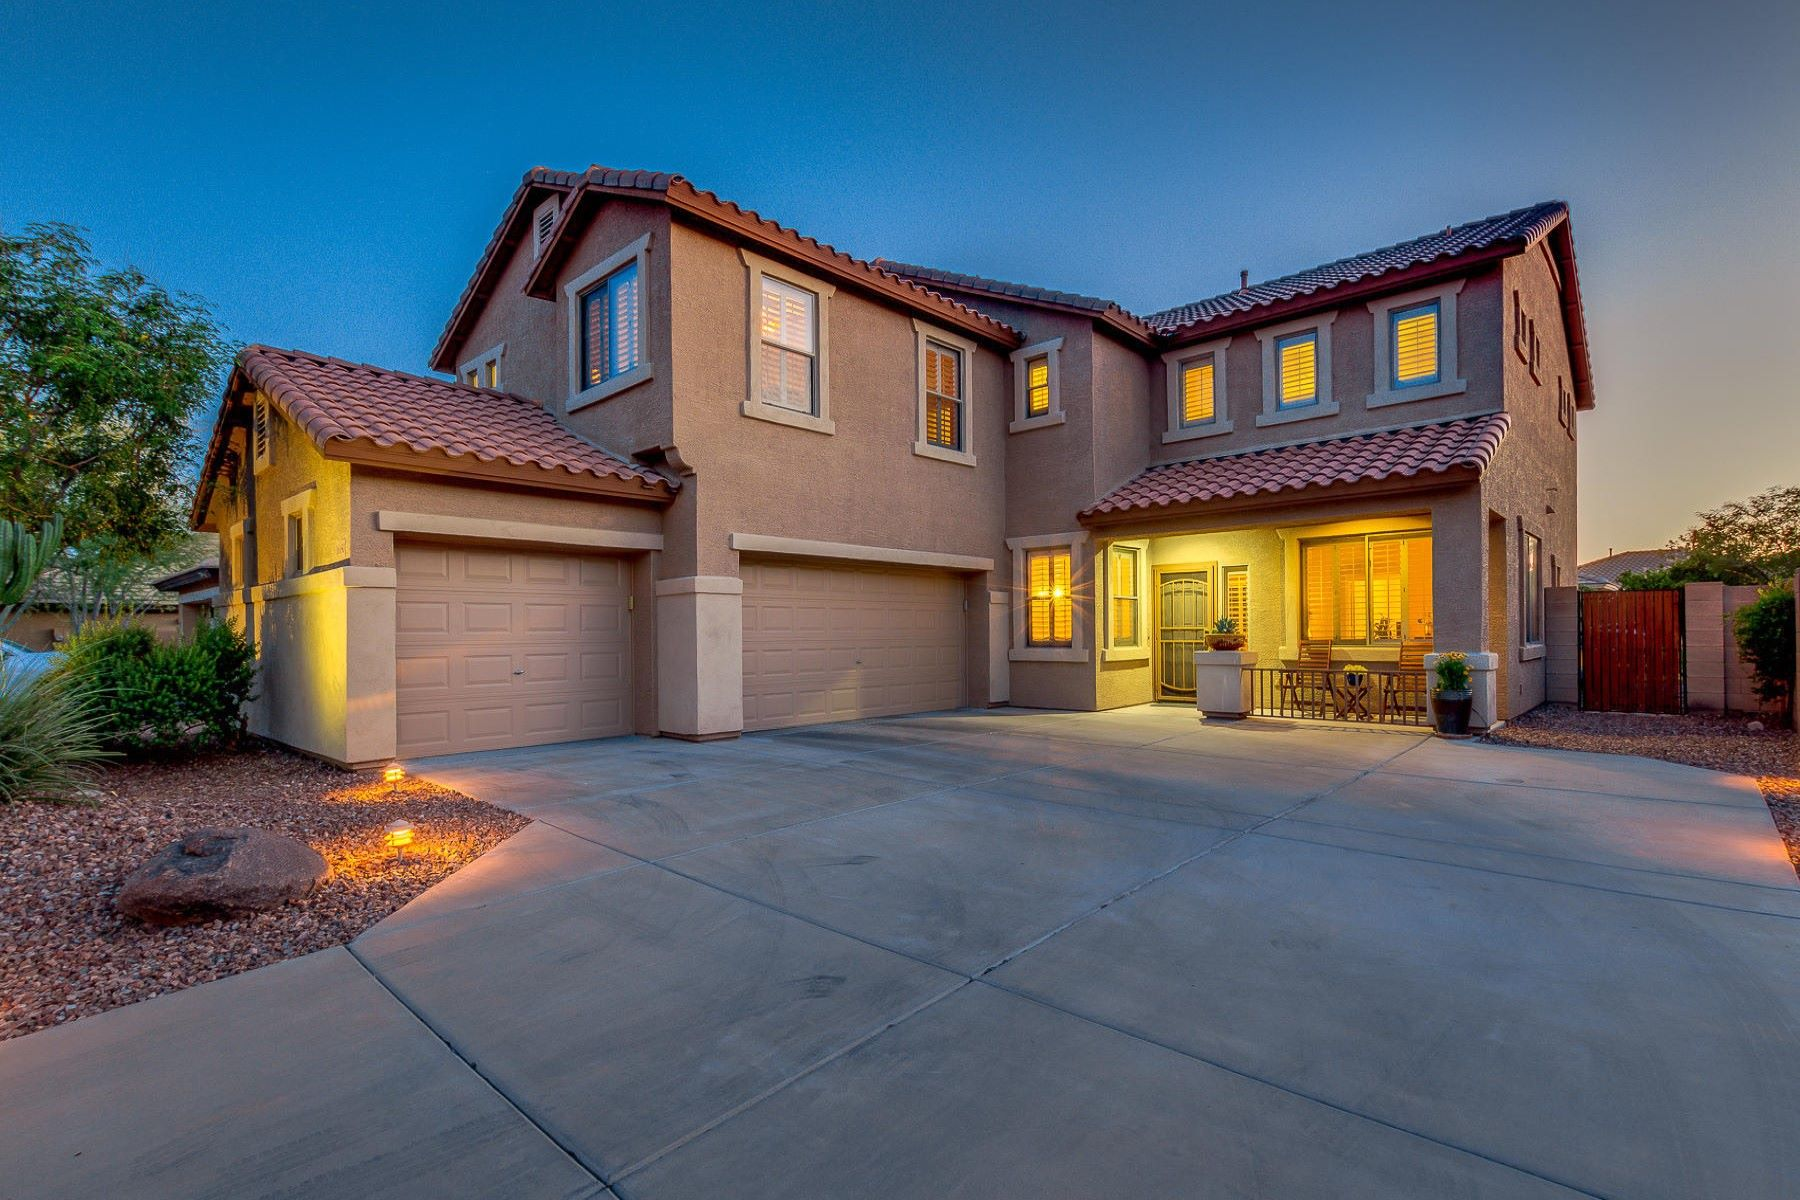 Casa Unifamiliar por un Venta en Gorgeous two story home in the gated community of Horseman's Park 16180 N 99th Pl Scottsdale, Arizona, 85260 Estados Unidos